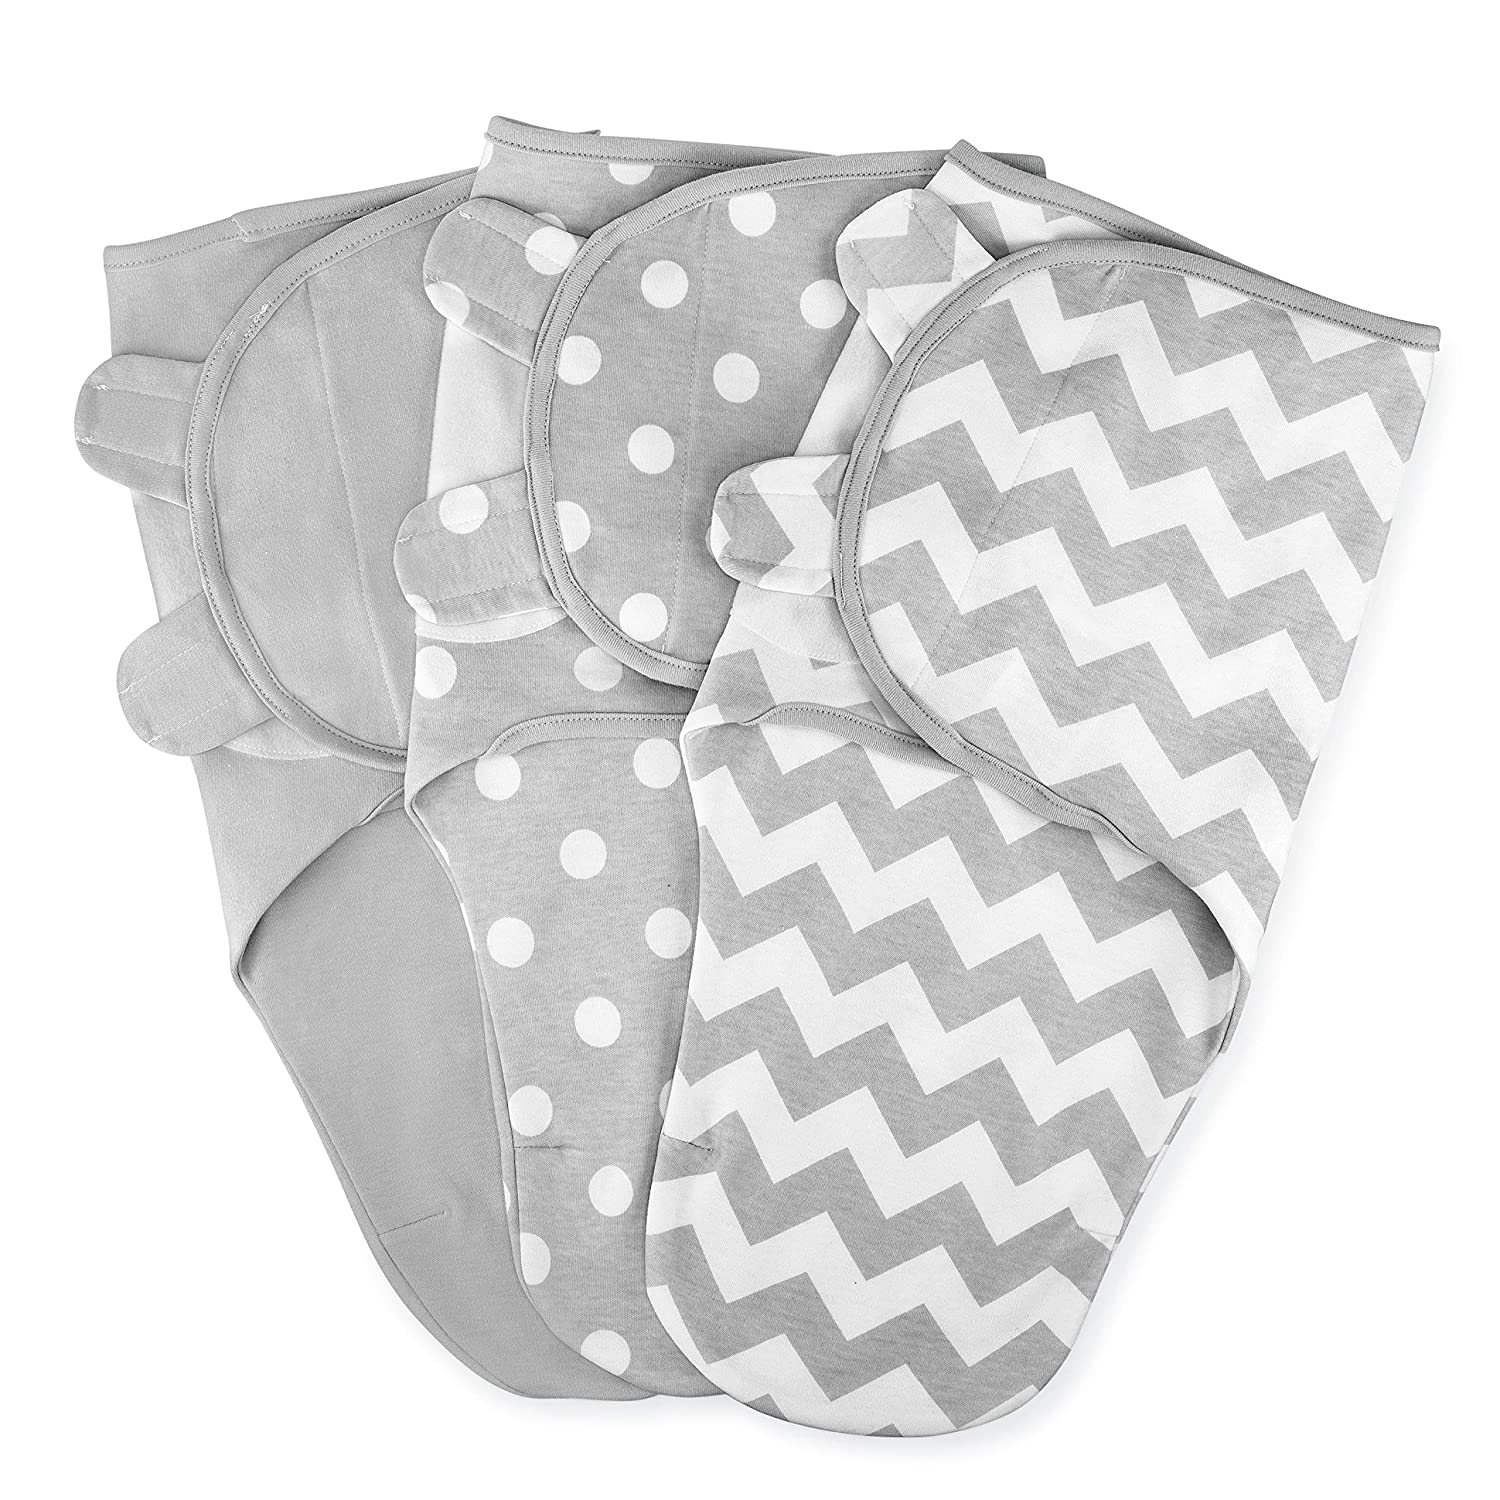 Comfy Cubs Swaddle Blanket Baby Girl Boy Easy Adjustable 3 Pack Infant Sleep Sack Wrap Newborn Babies